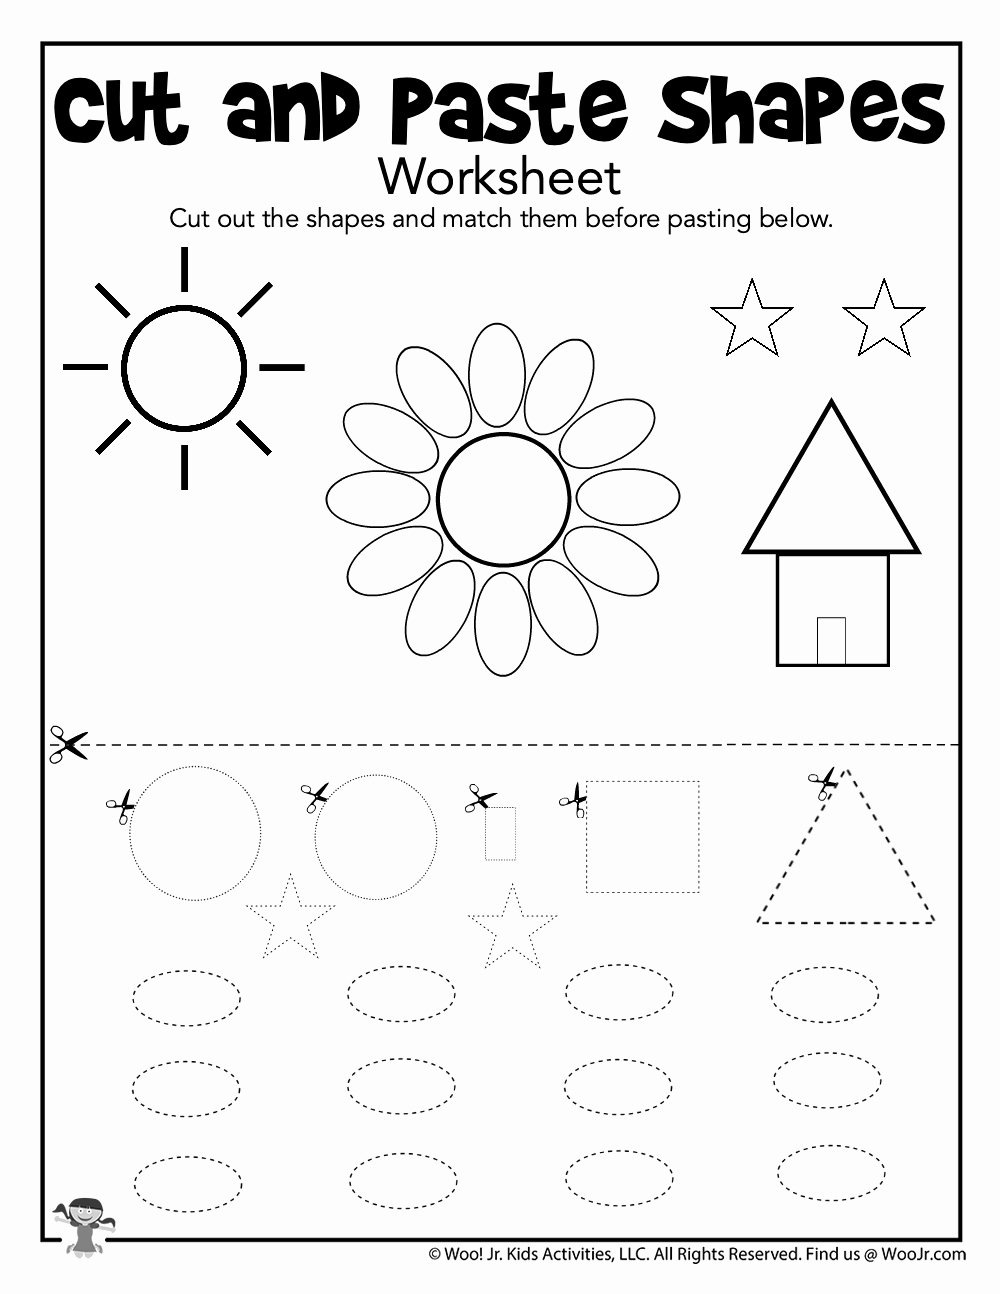 Preschool Cut and Paste Worksheets Ideas Preschool Cut and Paste Worksheet